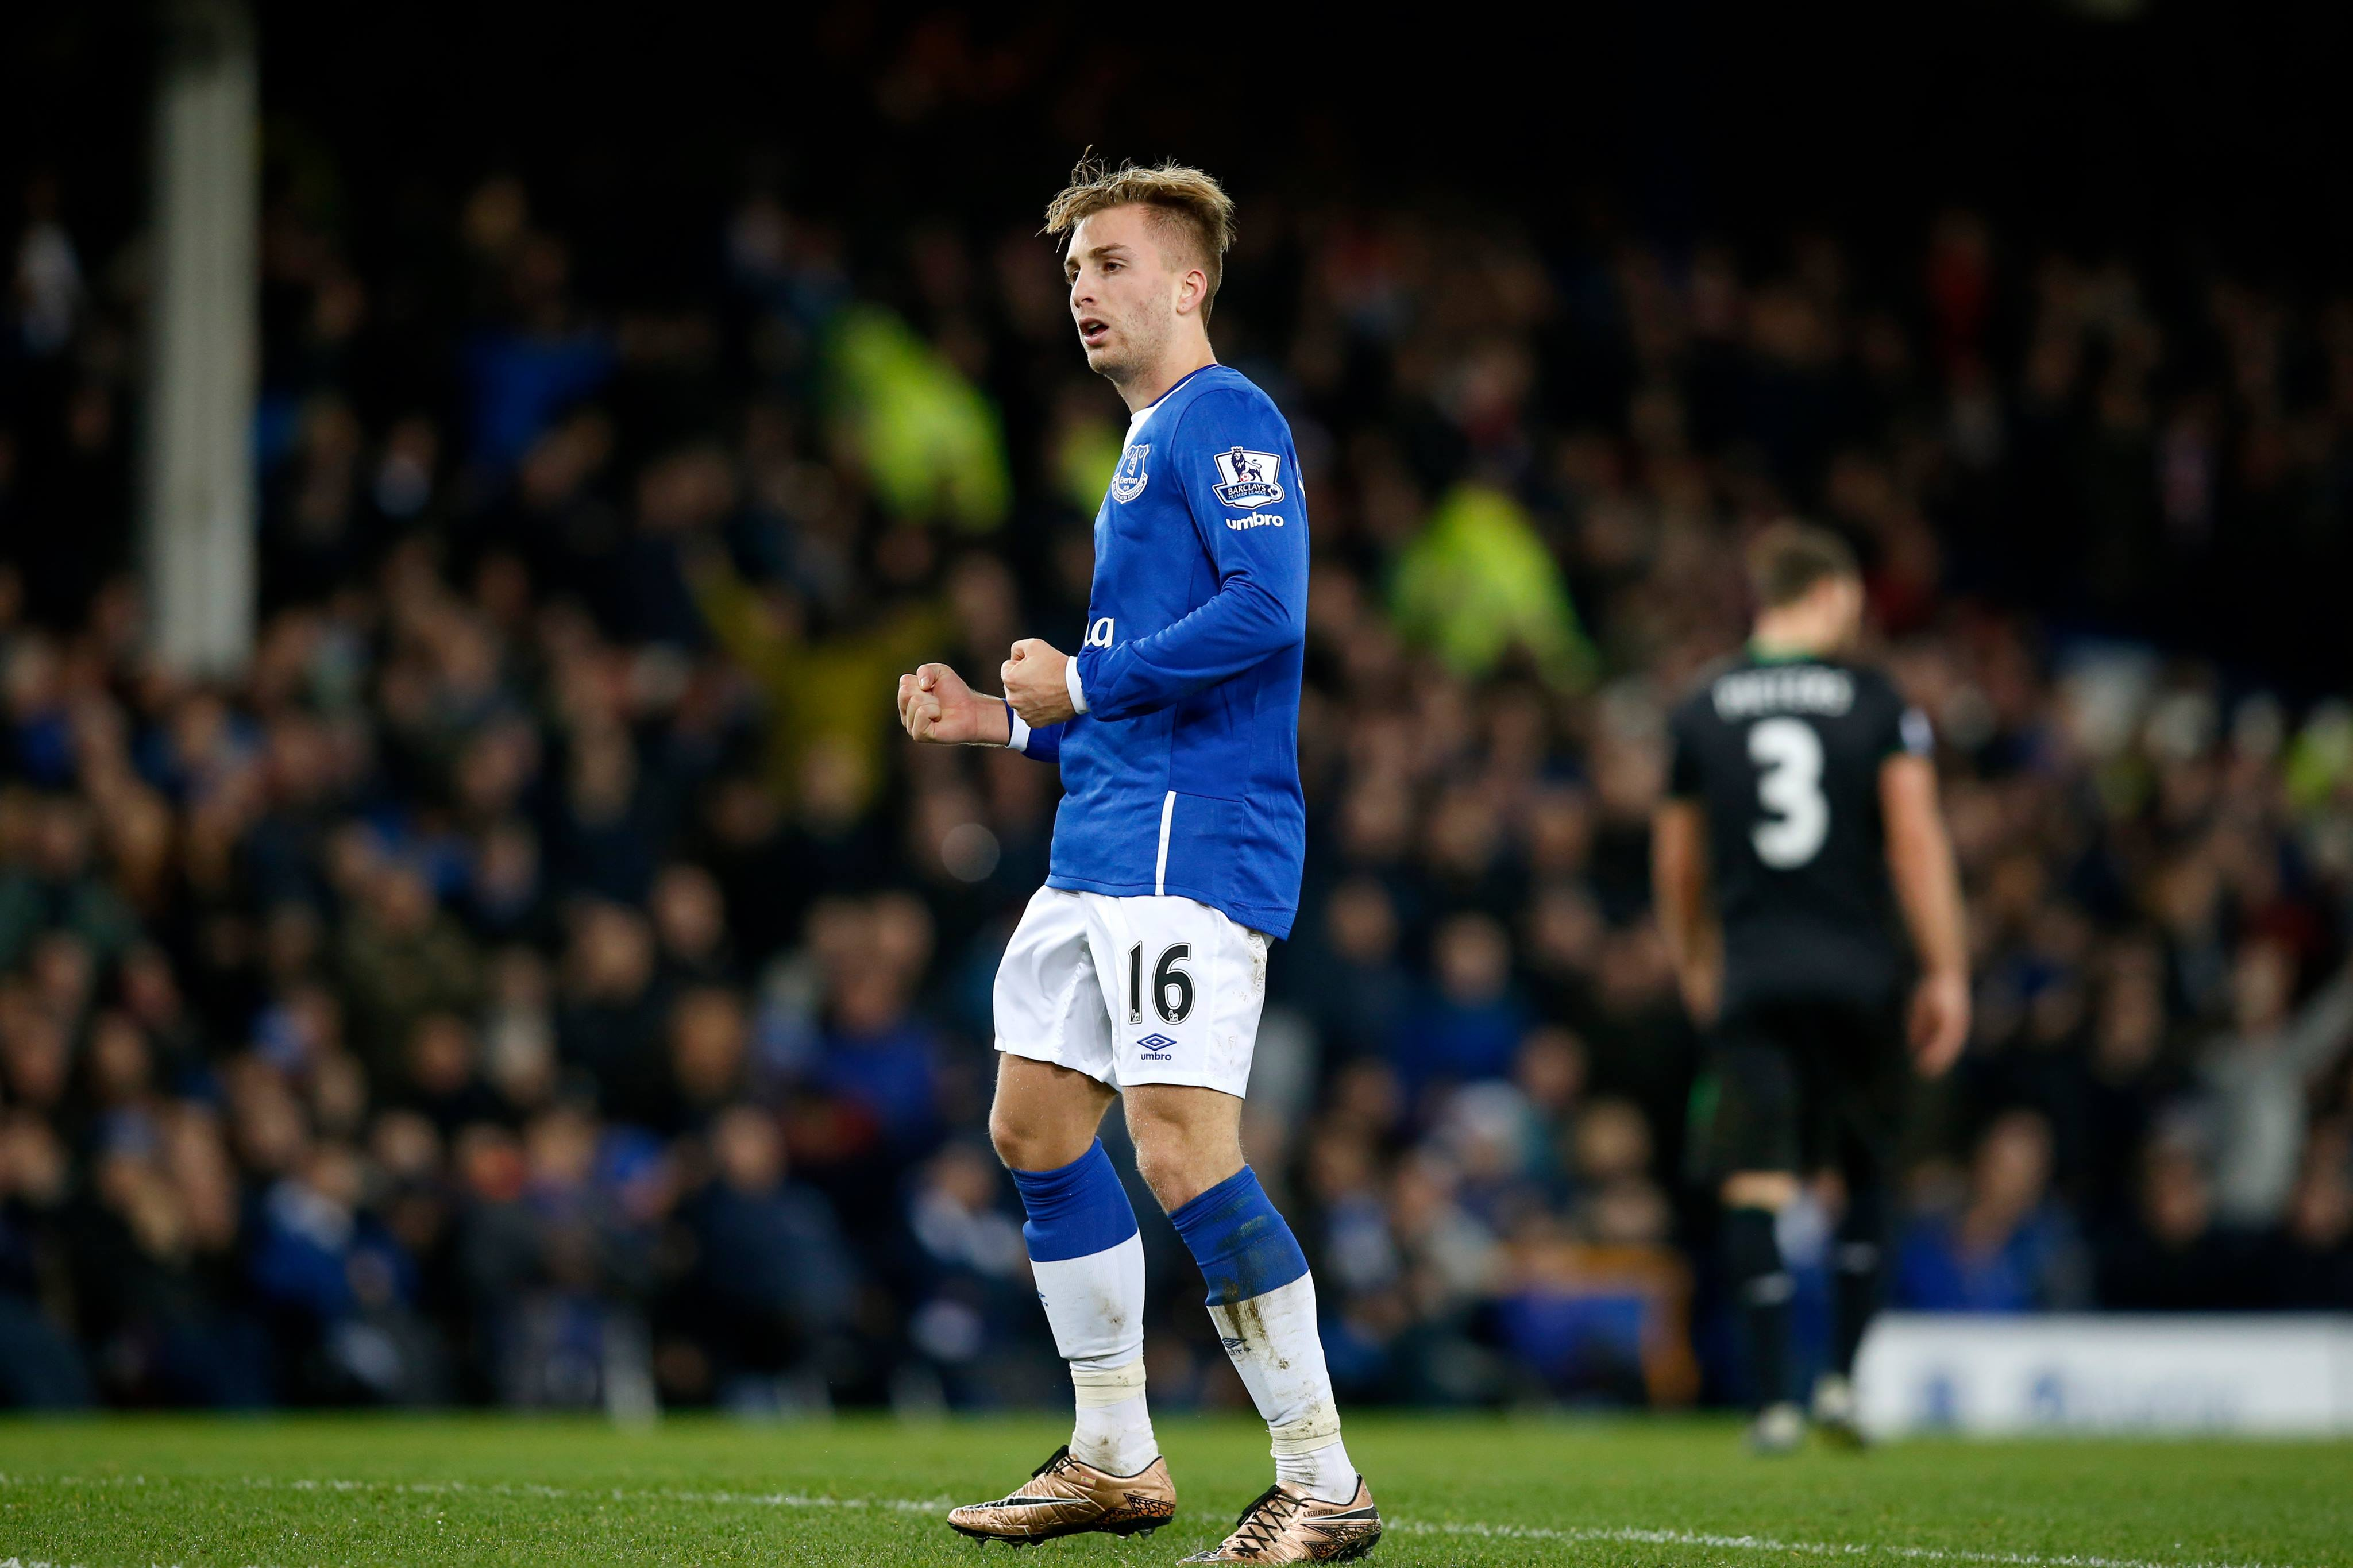 Watford sign Barcelona winger Deulofeu on loan